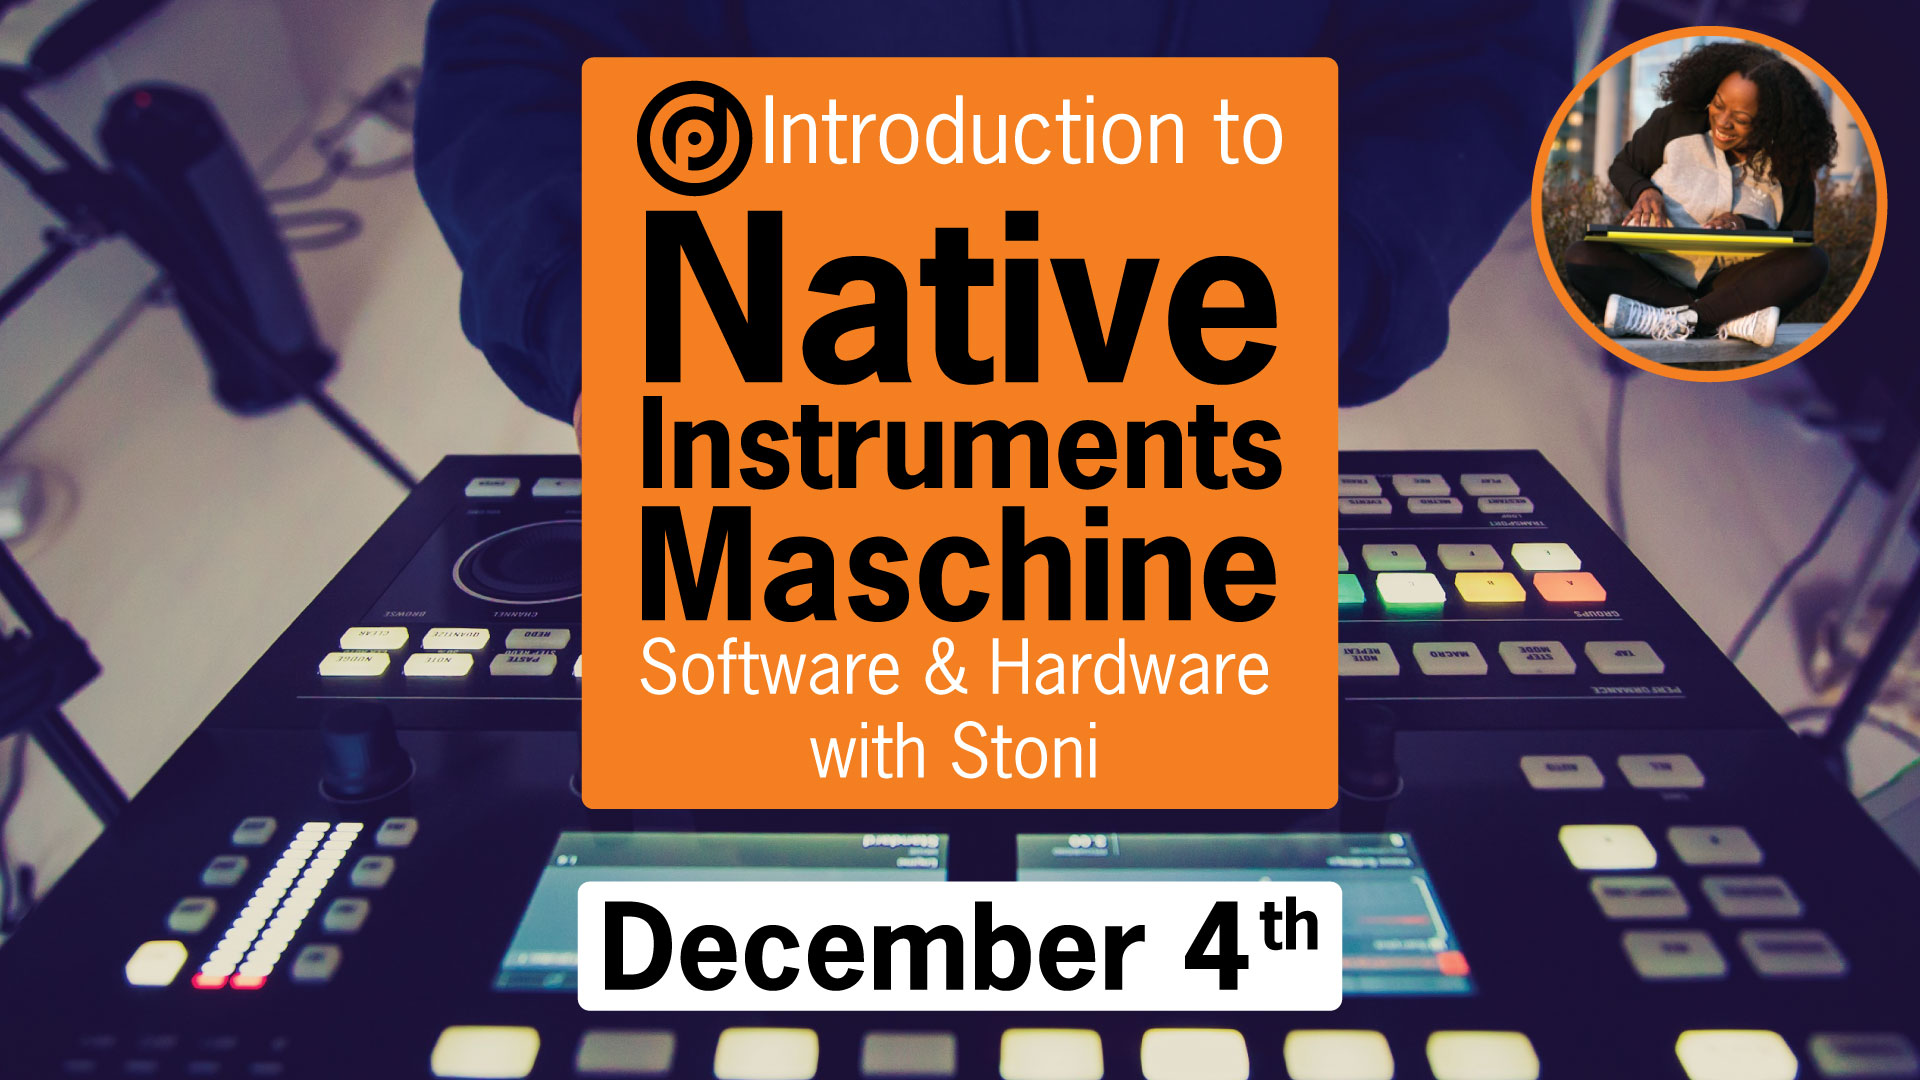 Stoni-Maschine-Intro-Dec4th-small.jpg